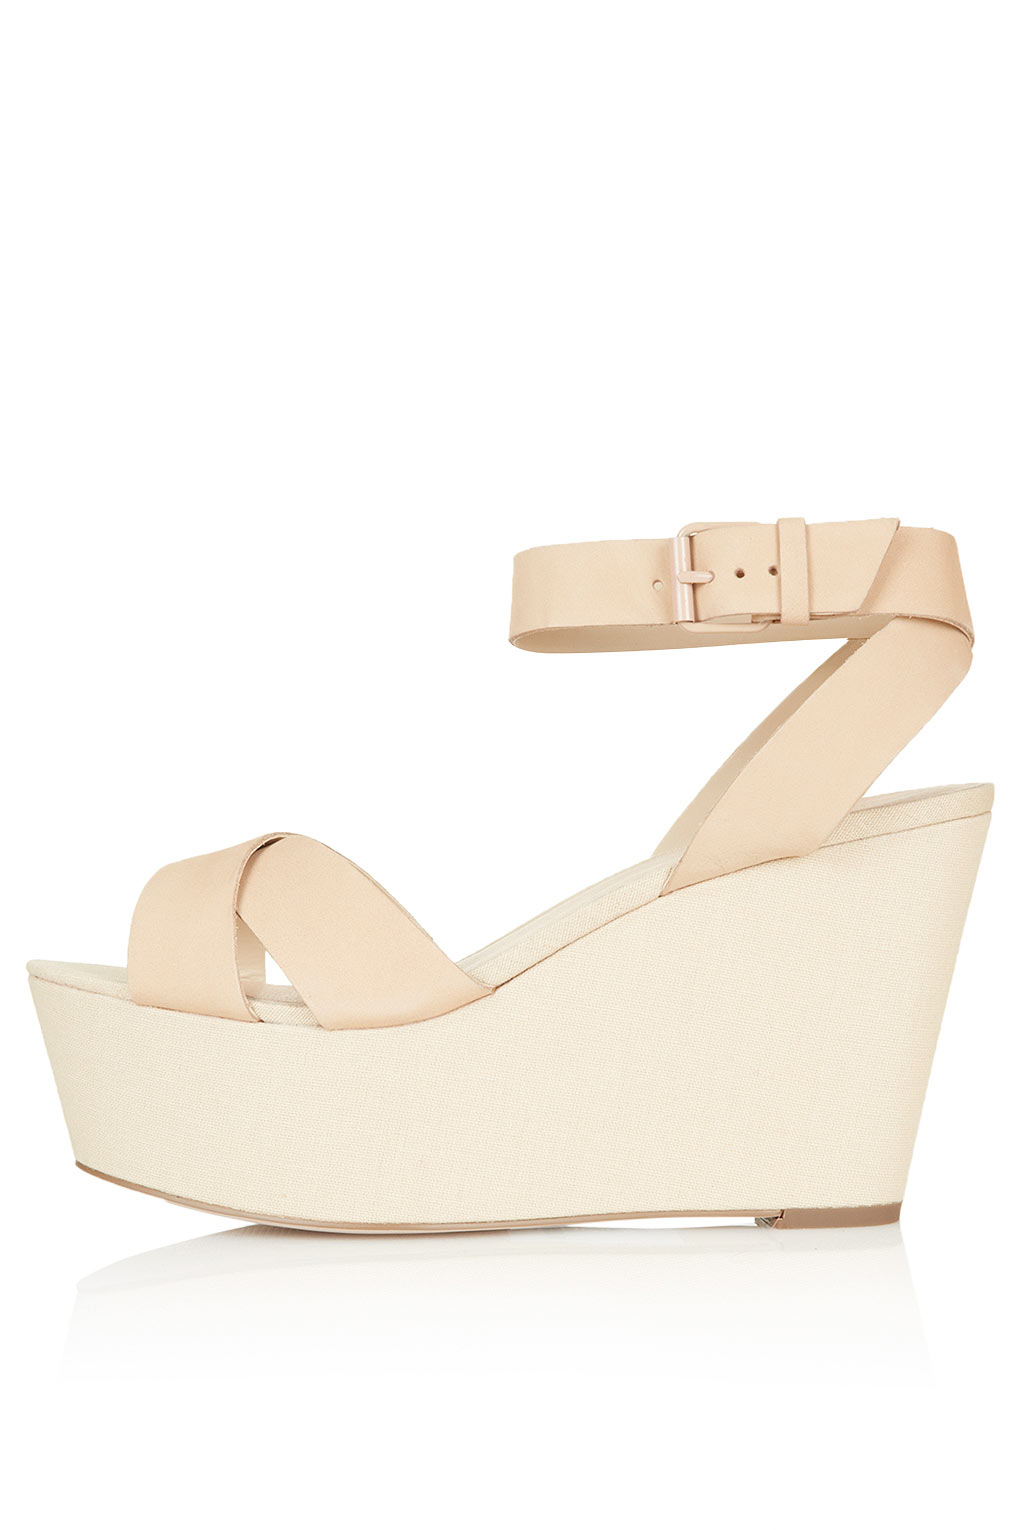 d673a76e529c Lyst - TOPSHOP Wreckage Crossover Flatforms in Natural